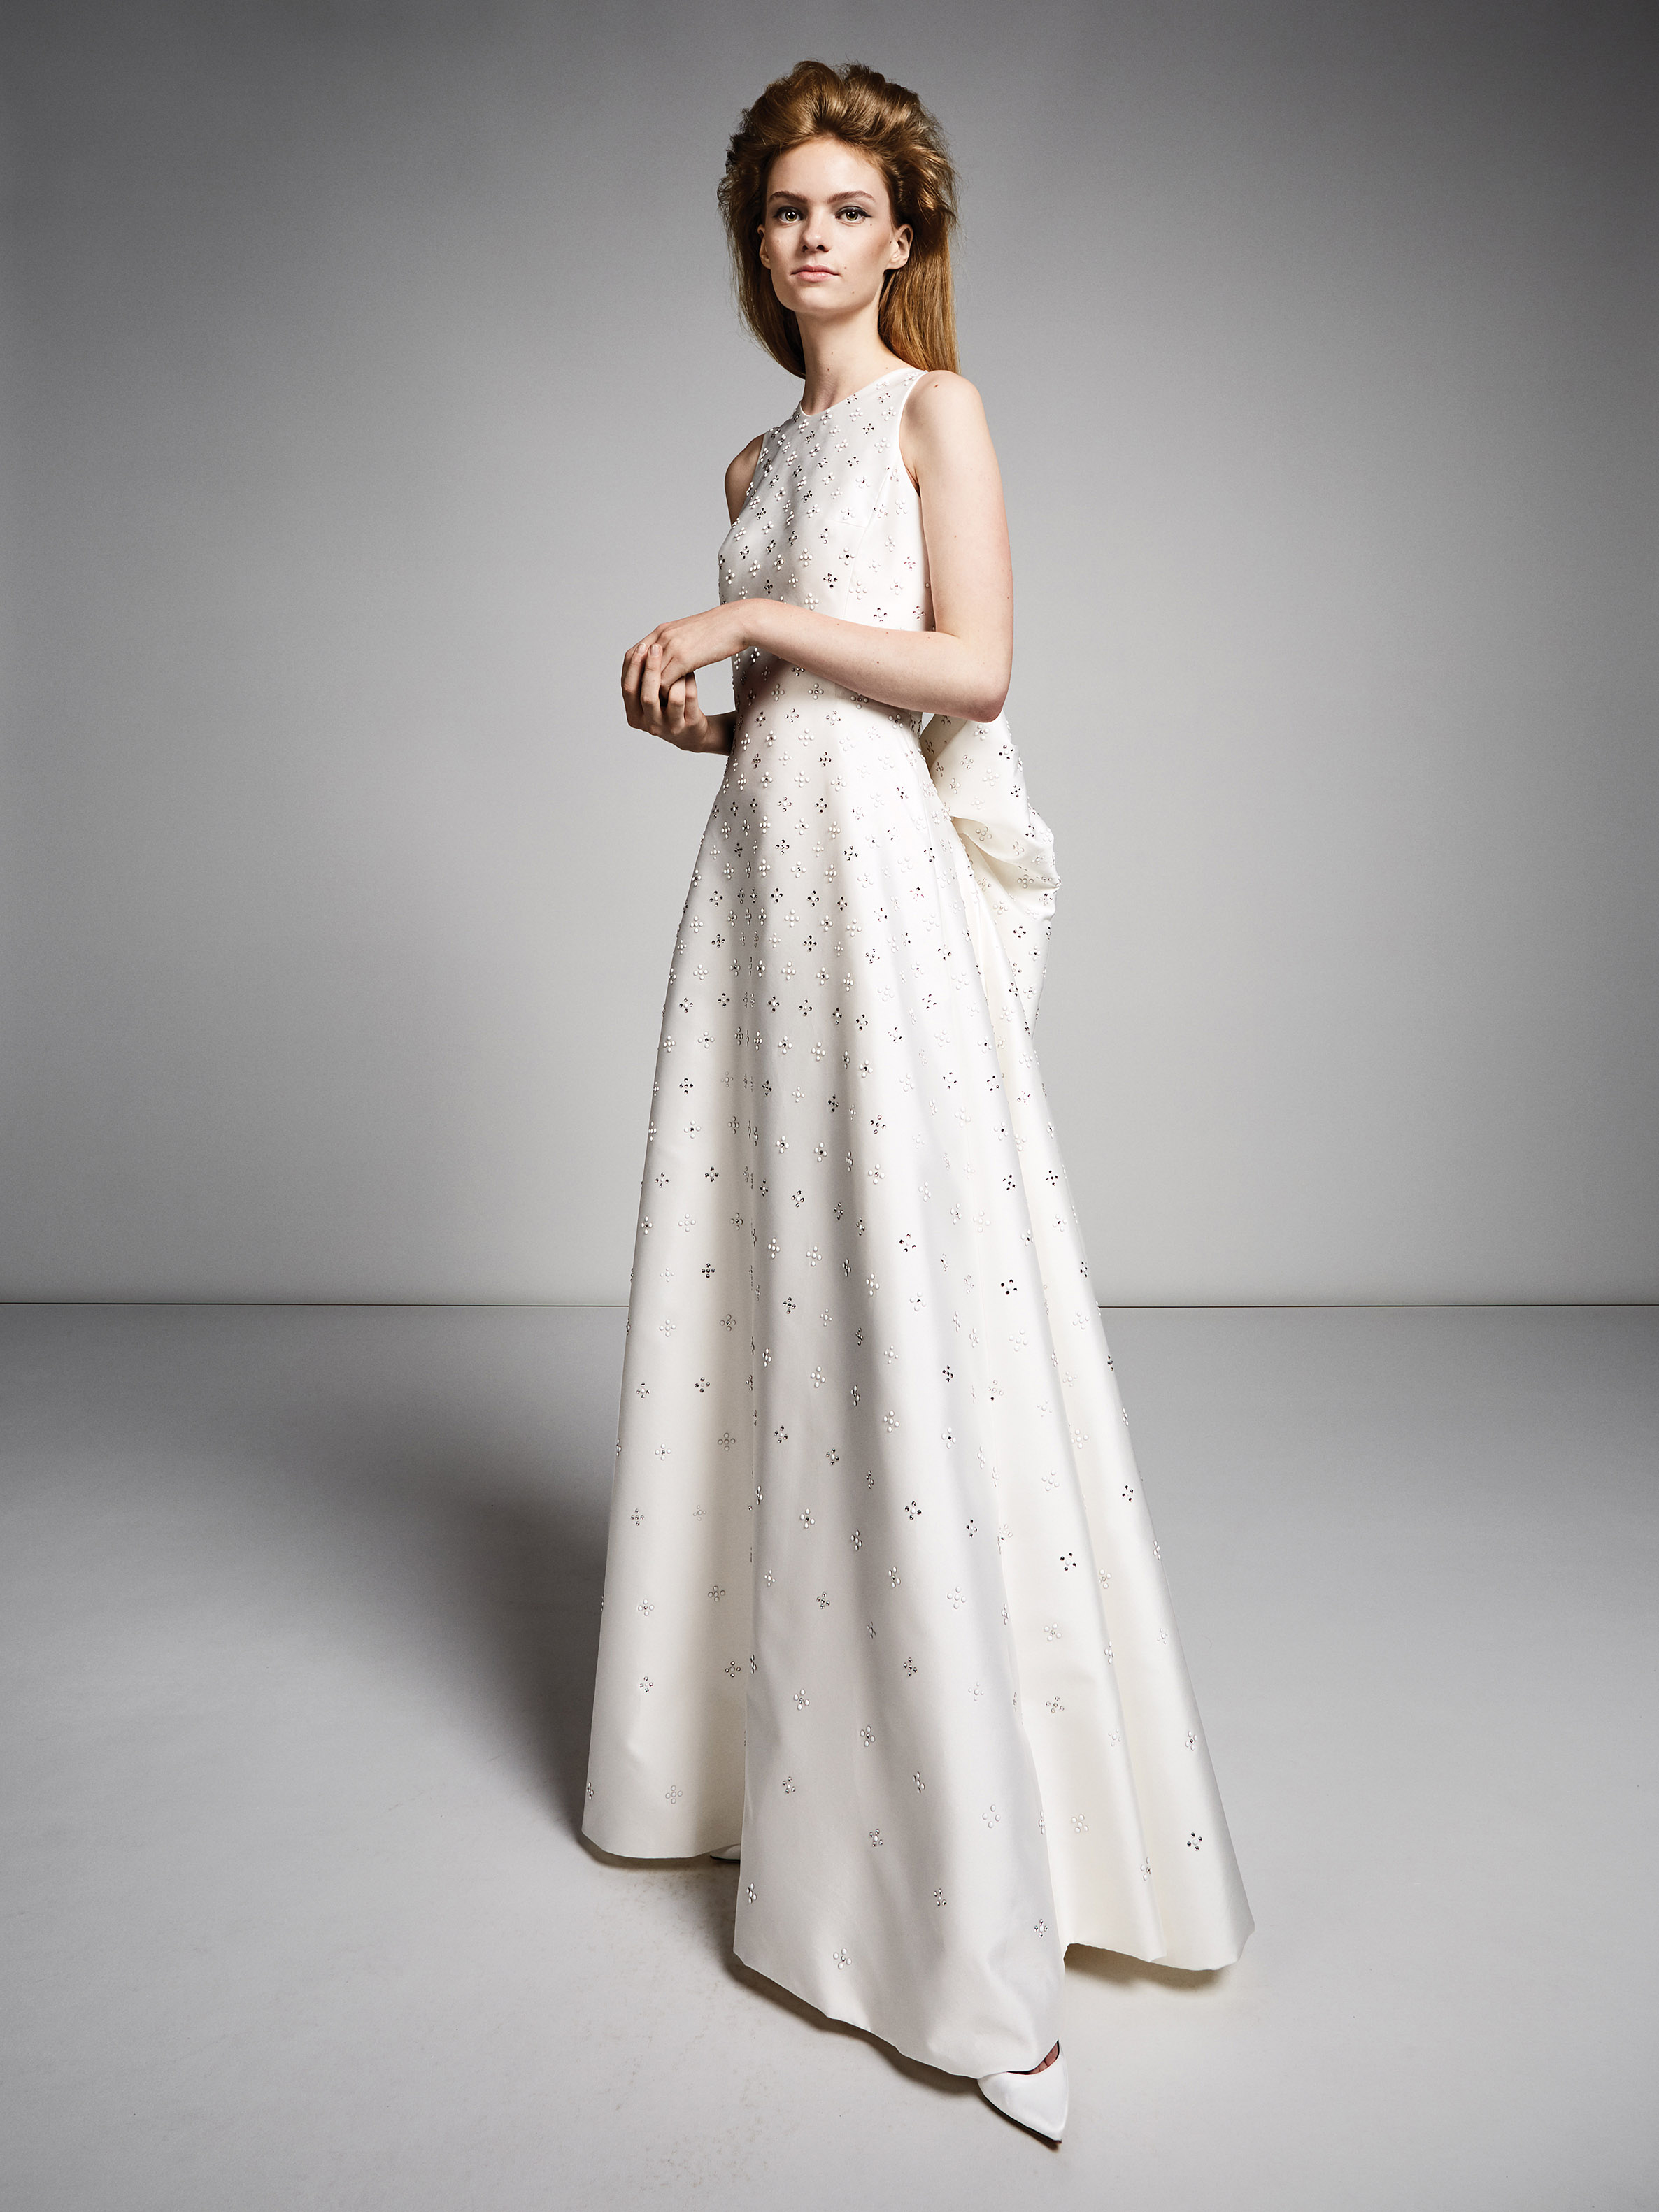 viktor rolf marriage fall 2019 beaded high neckline a-line gown with large bow in back